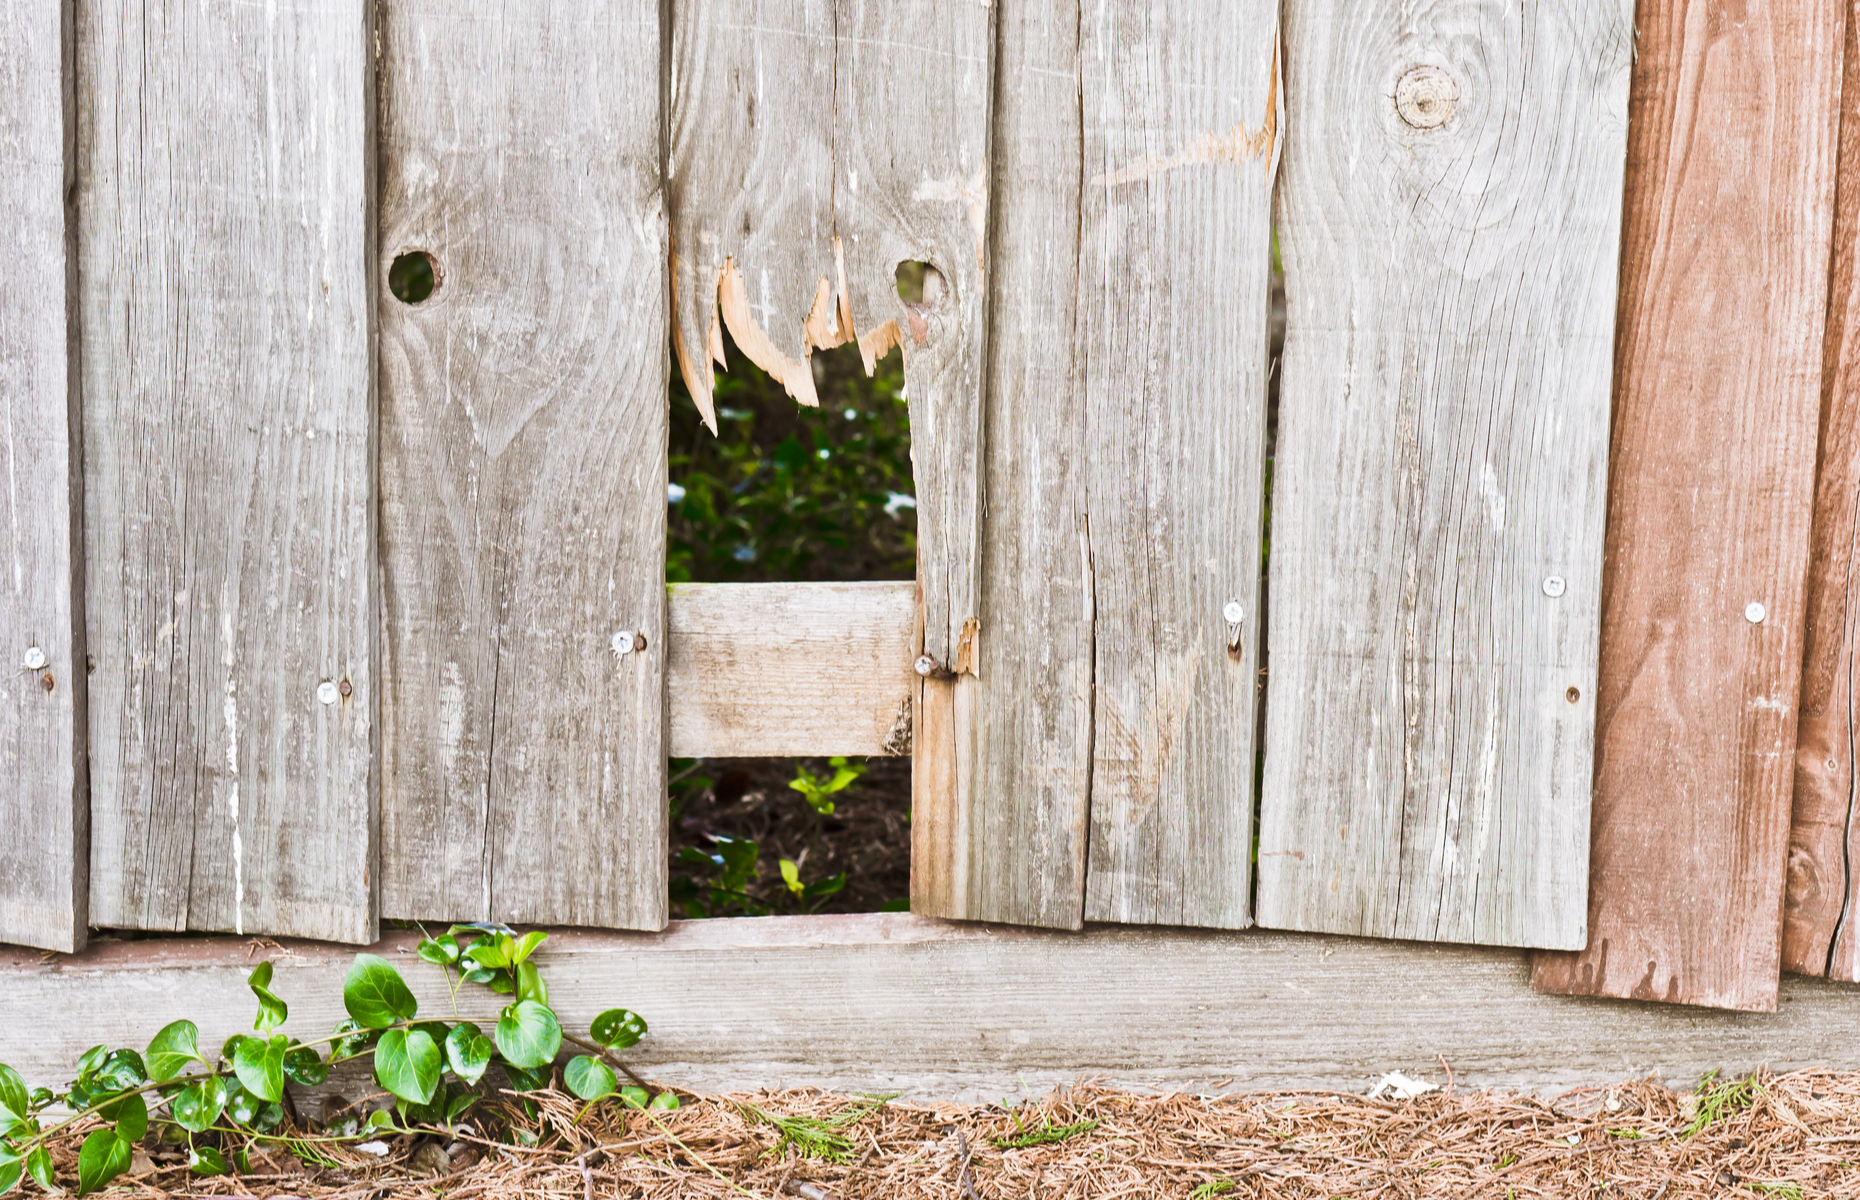 Leaving broken fence posts to linger could lead to more costly repairs. Image: Tom Gowanlock / Shutterstock